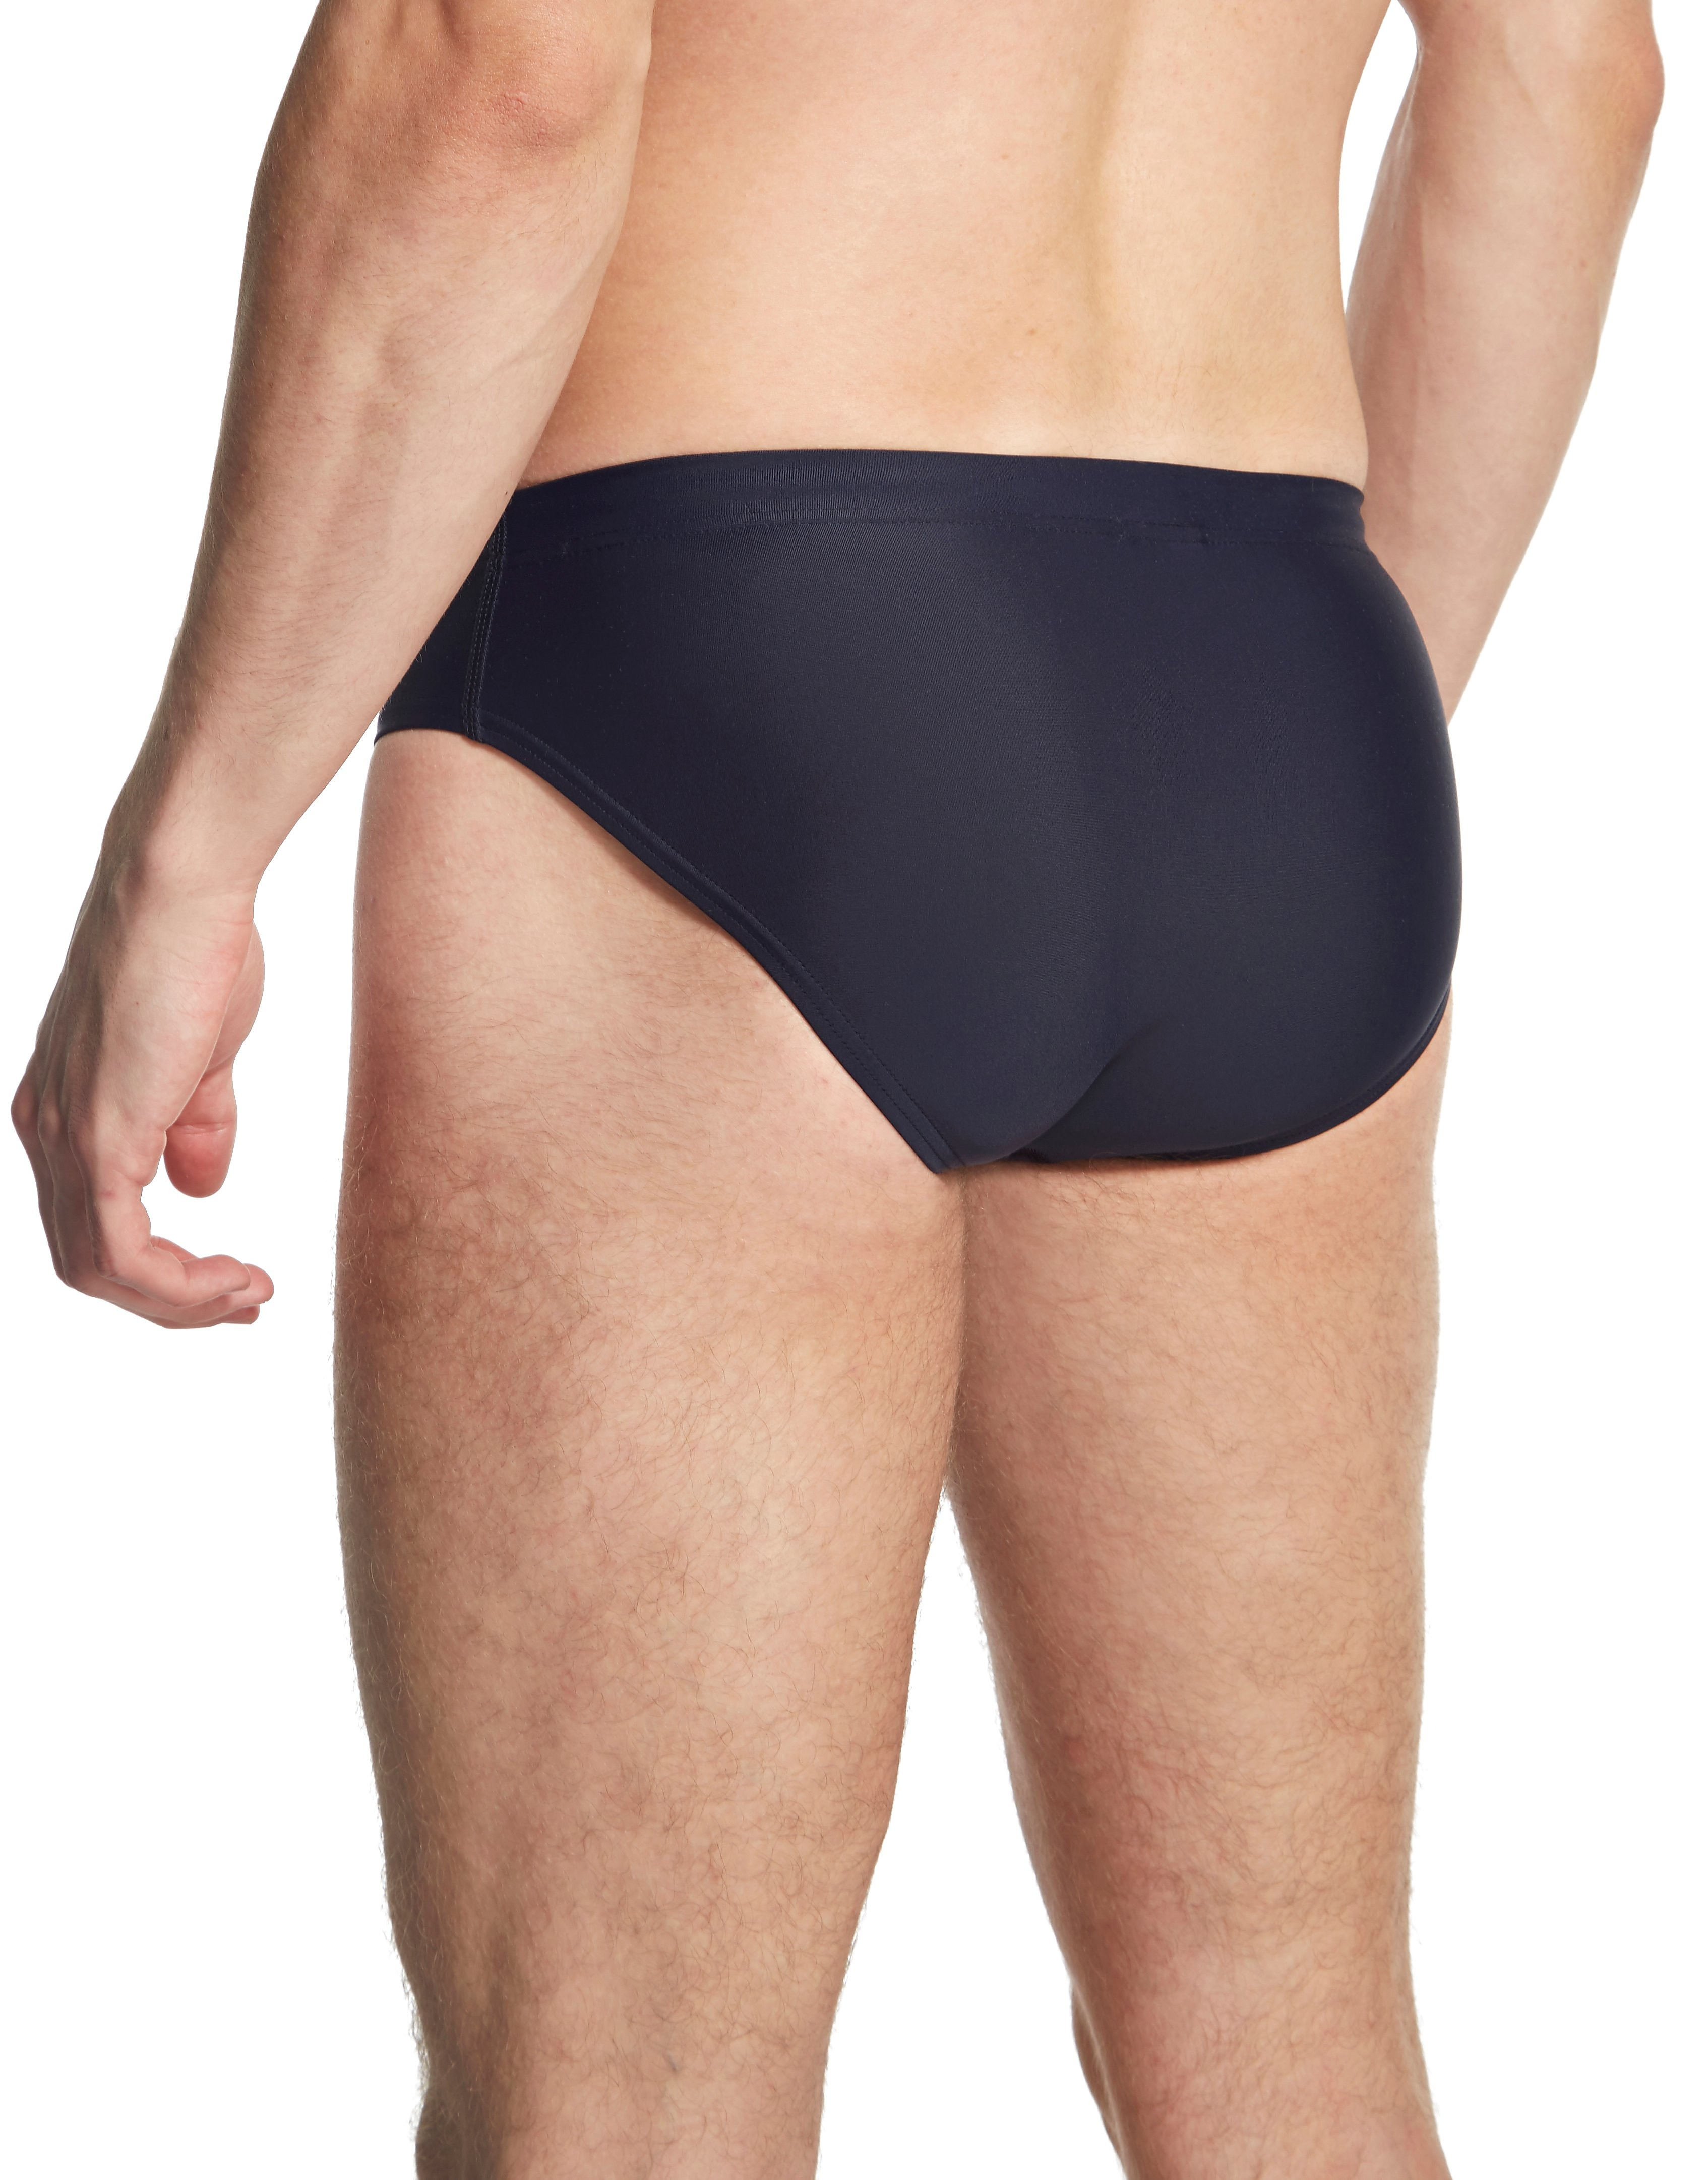 Speedo Endurance 7cm Swim Briefs